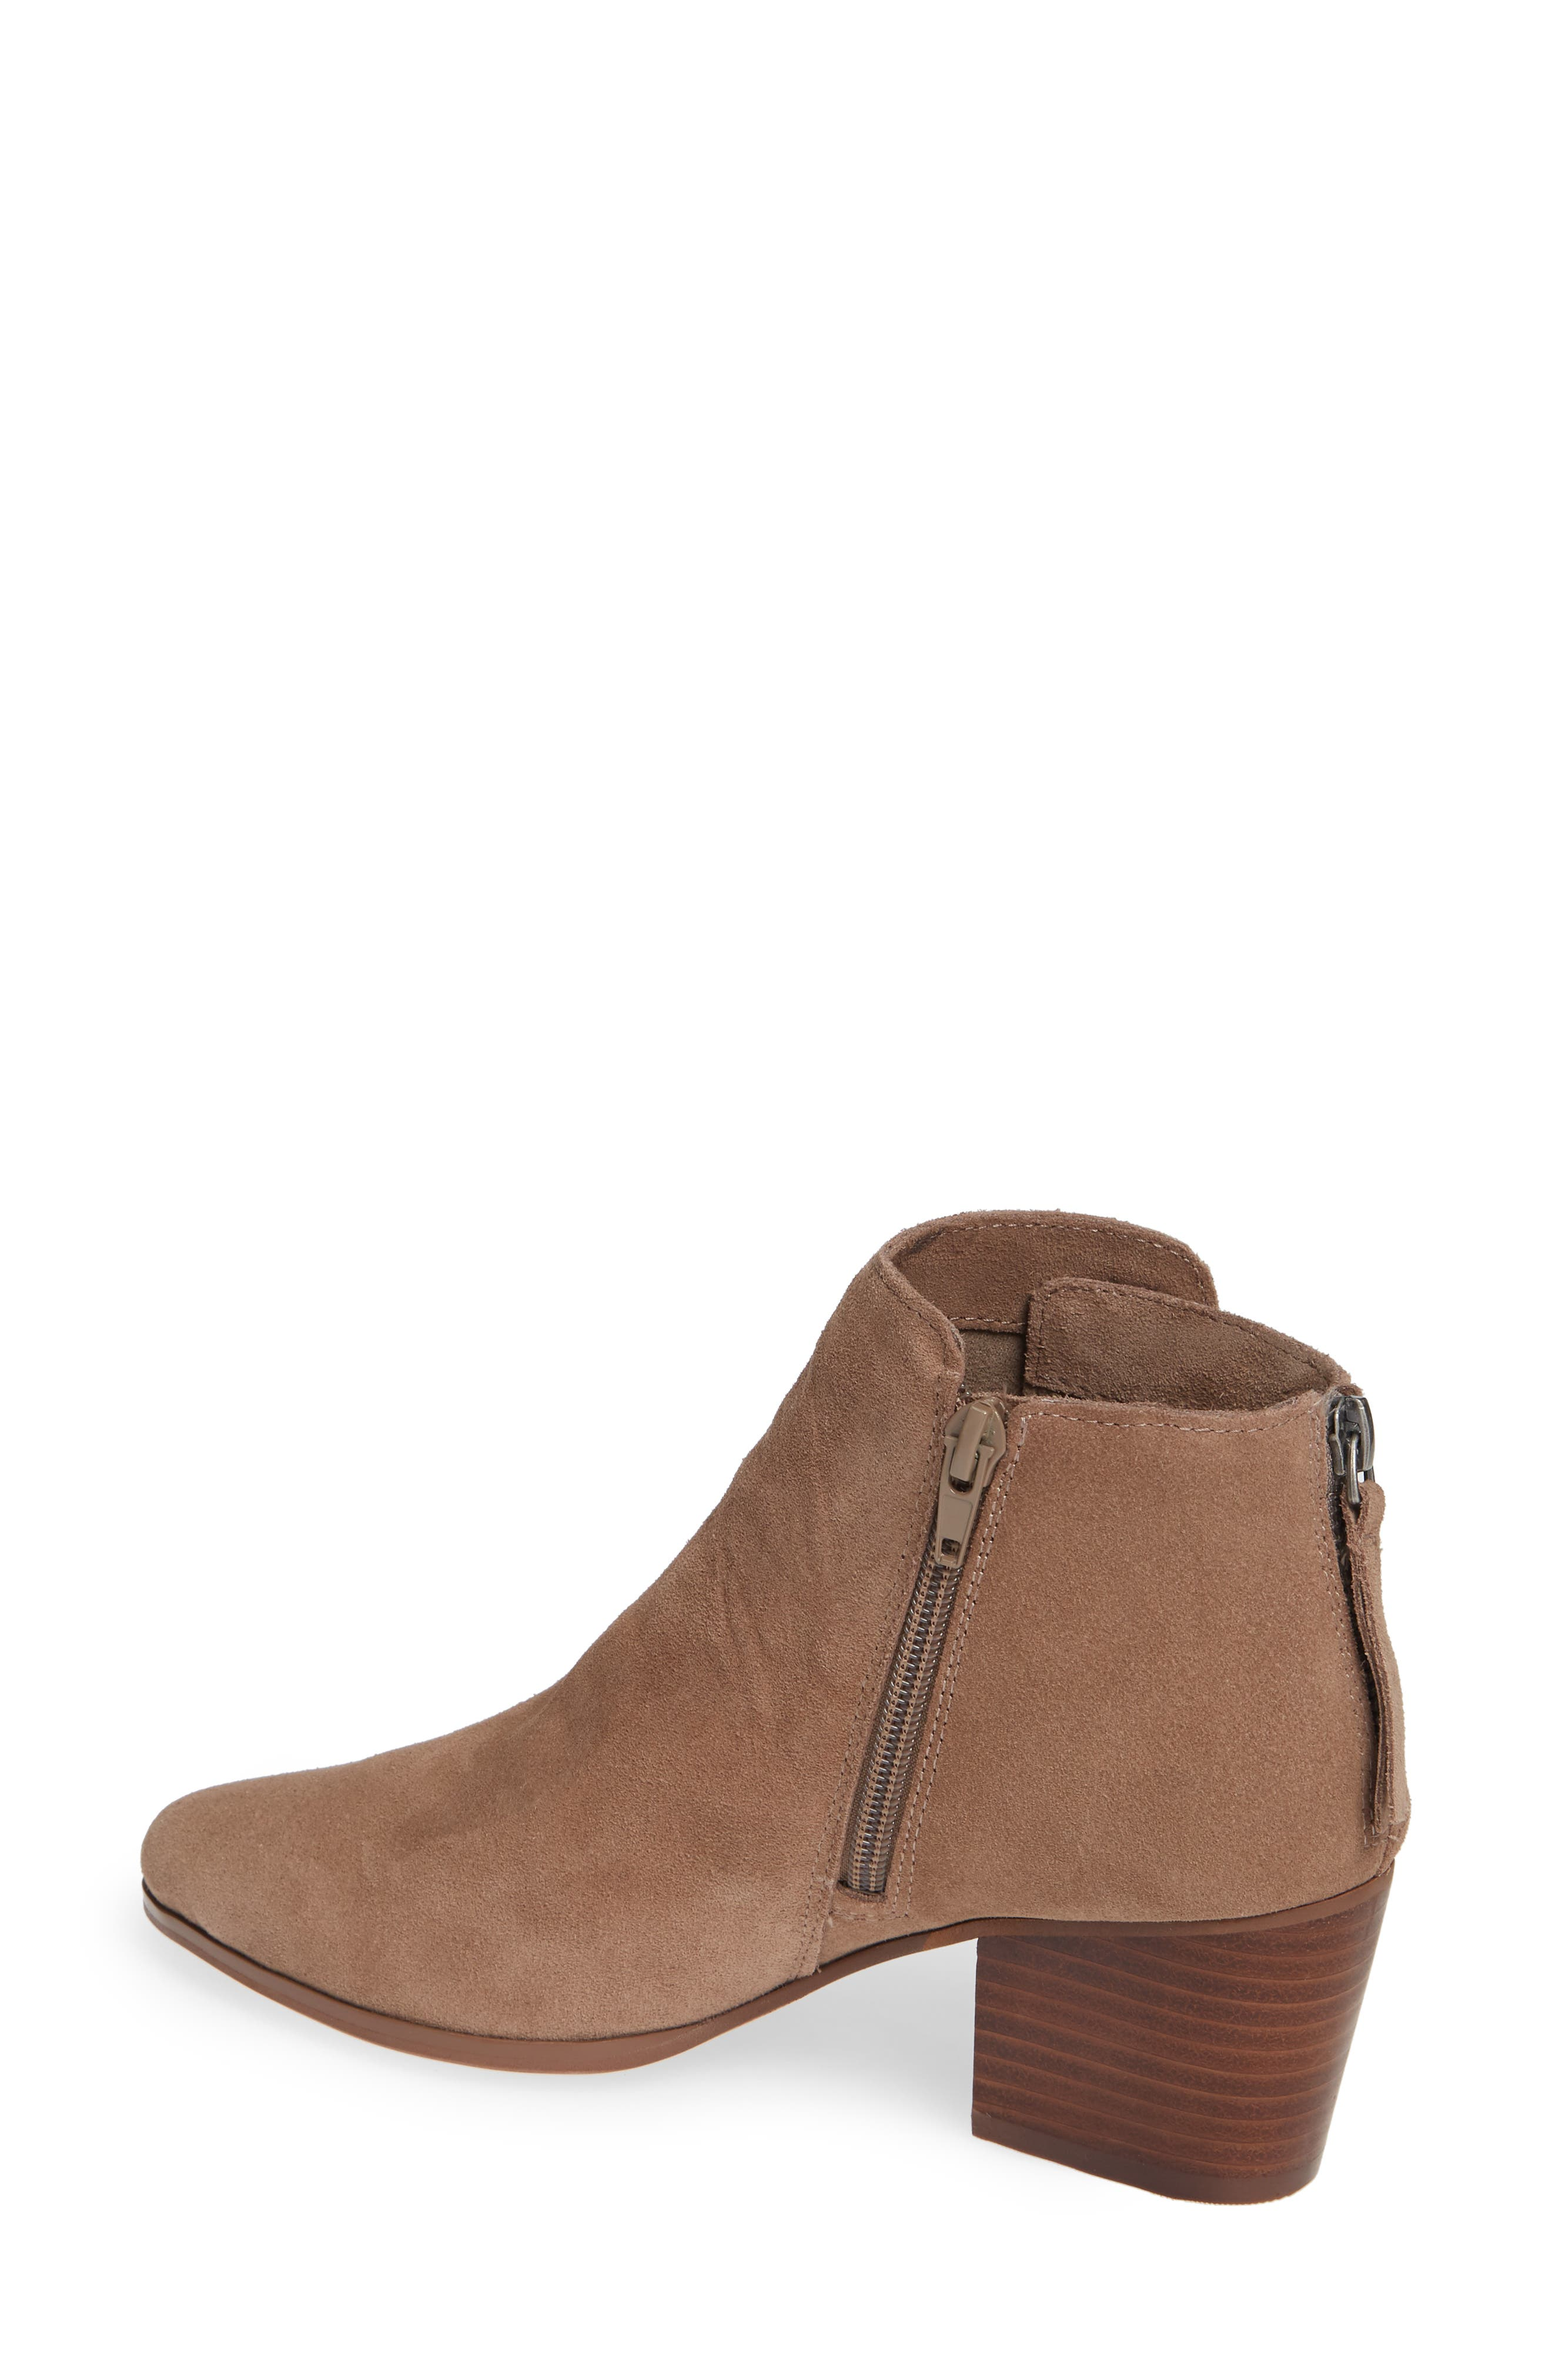 River Bootie,                             Alternate thumbnail 2, color,                             NEW TAUPE SUEDE